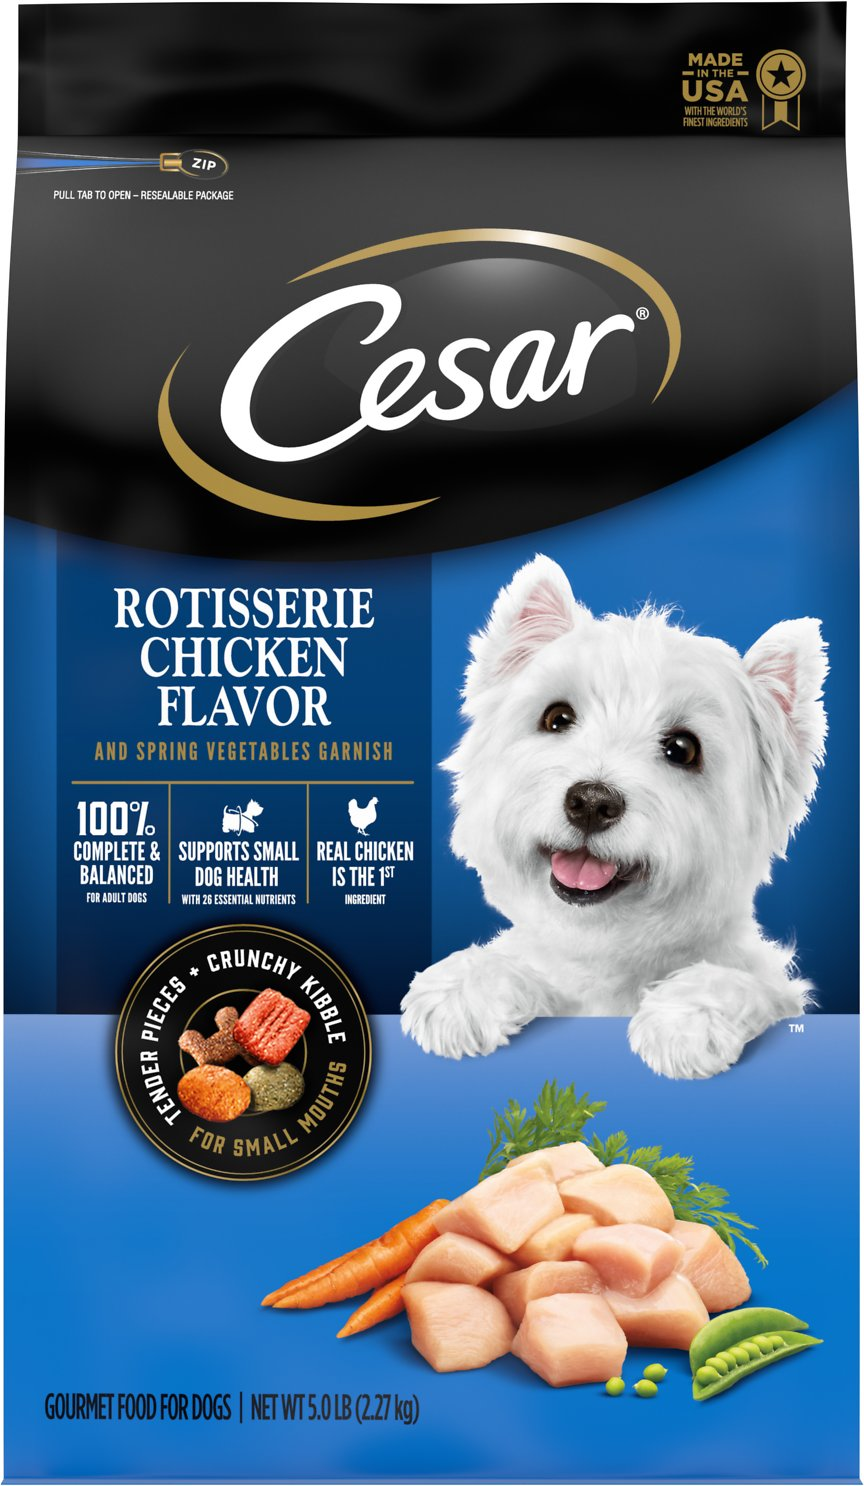 Canine Cuisine Dry Dog Food